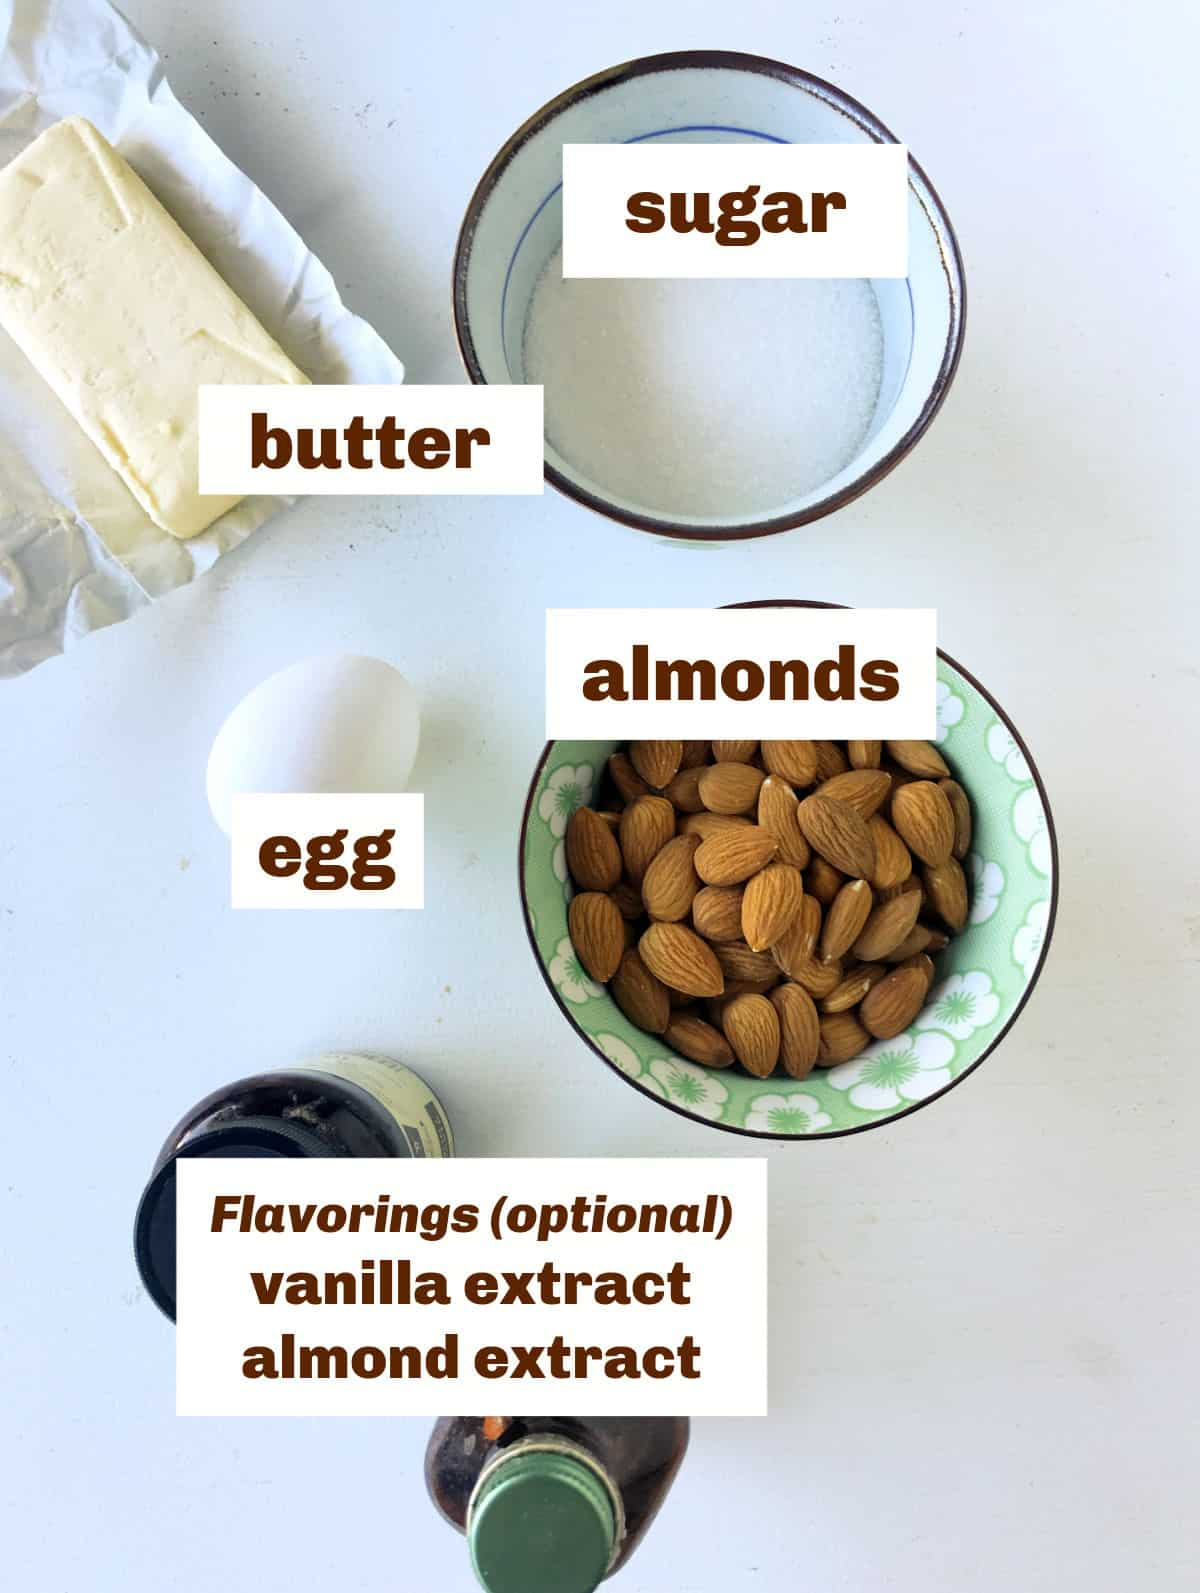 Whitish surface with almond cream ingredients including butter, almonds, and sugar in bowls